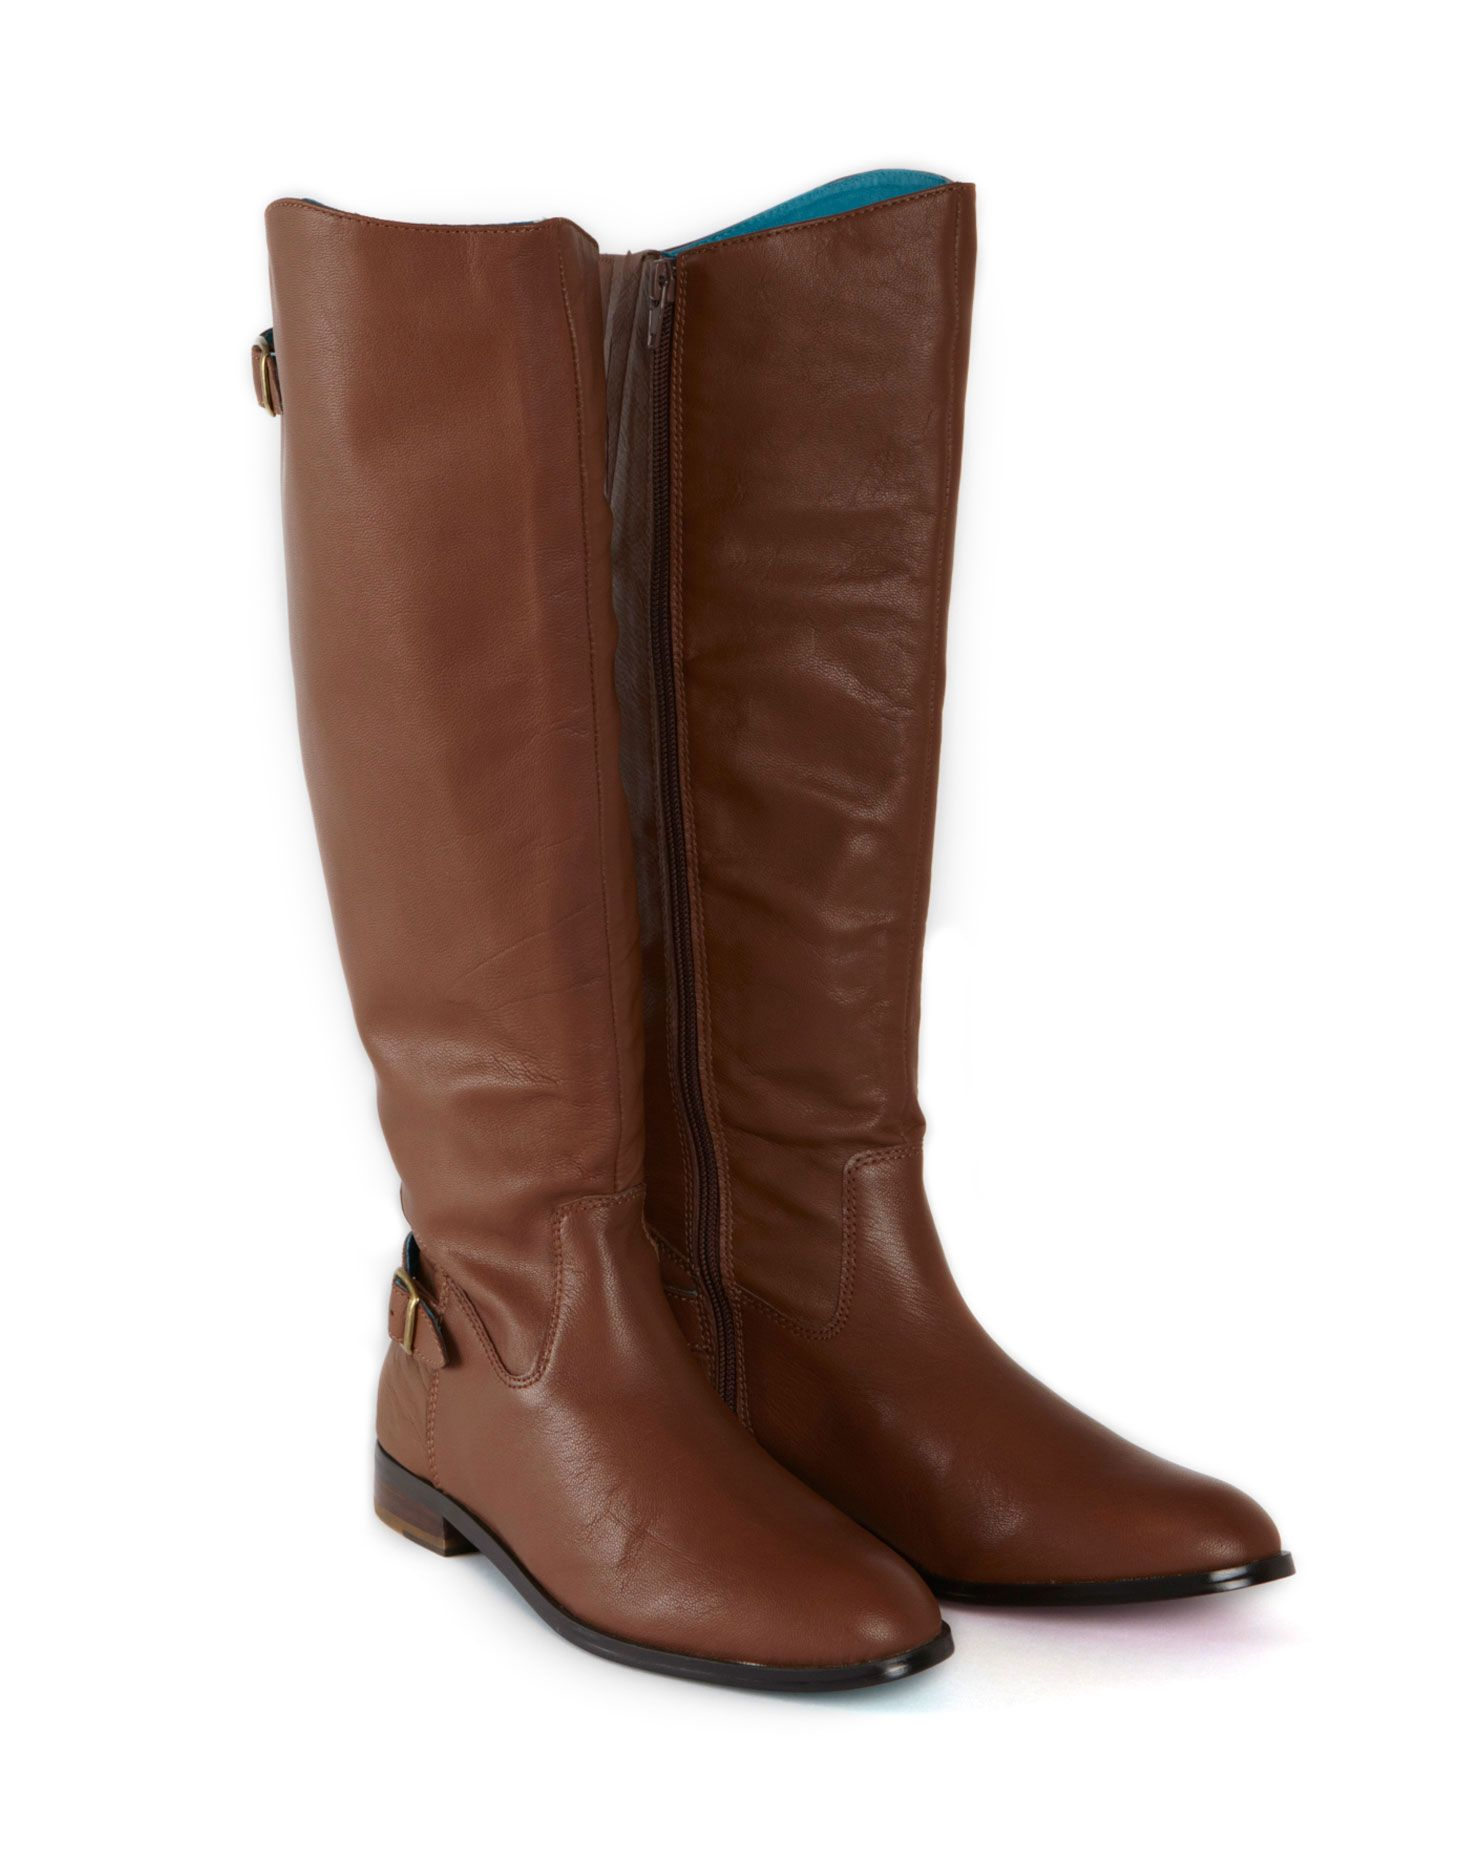 brown boots - Google Search | Wardrobe | Pinterest | Brown boots ...